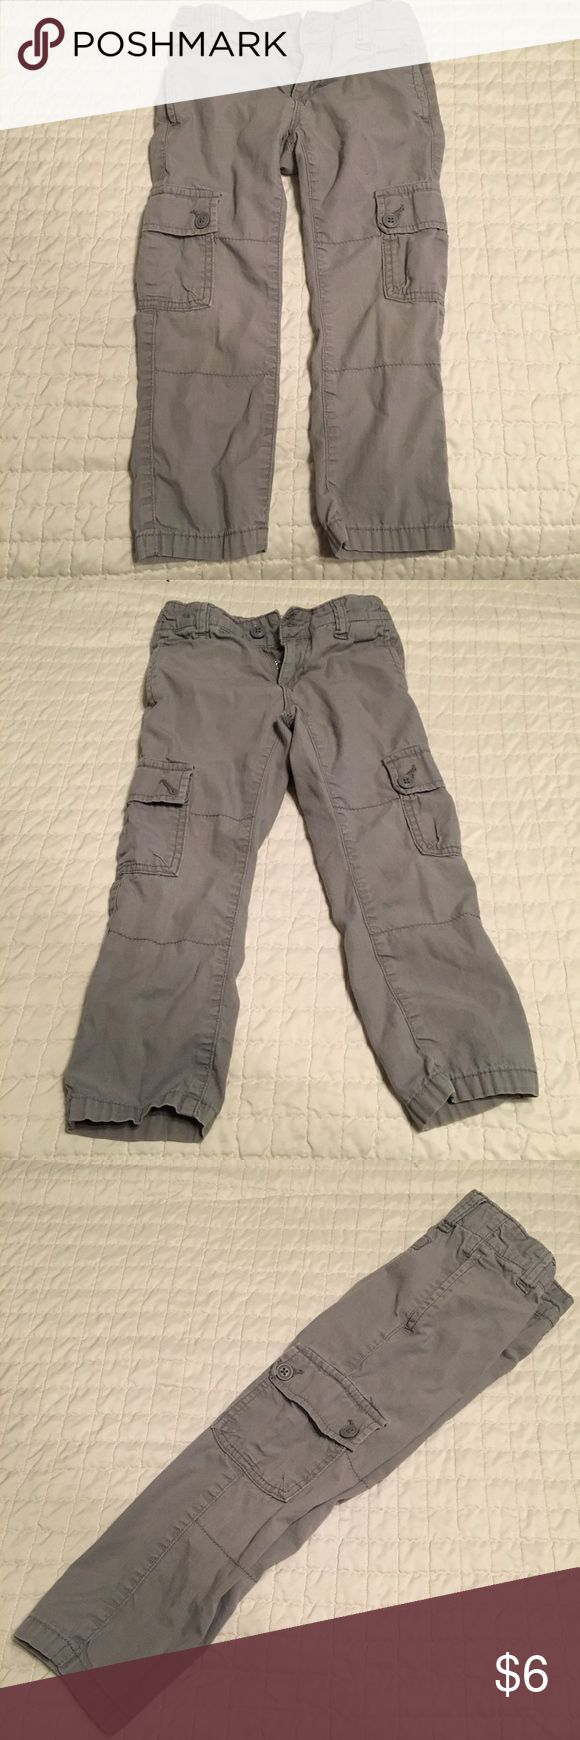 3 FOR $10! Old Navy Skinny Cargo Pants Excellent used condition, worn once, grey skinny cargos by Old Navy. Very nice pair of pants. Plenty of photos. Definitely fit smaller end of 4T so they make a great transition from 3T. Old Navy Bottoms Casual